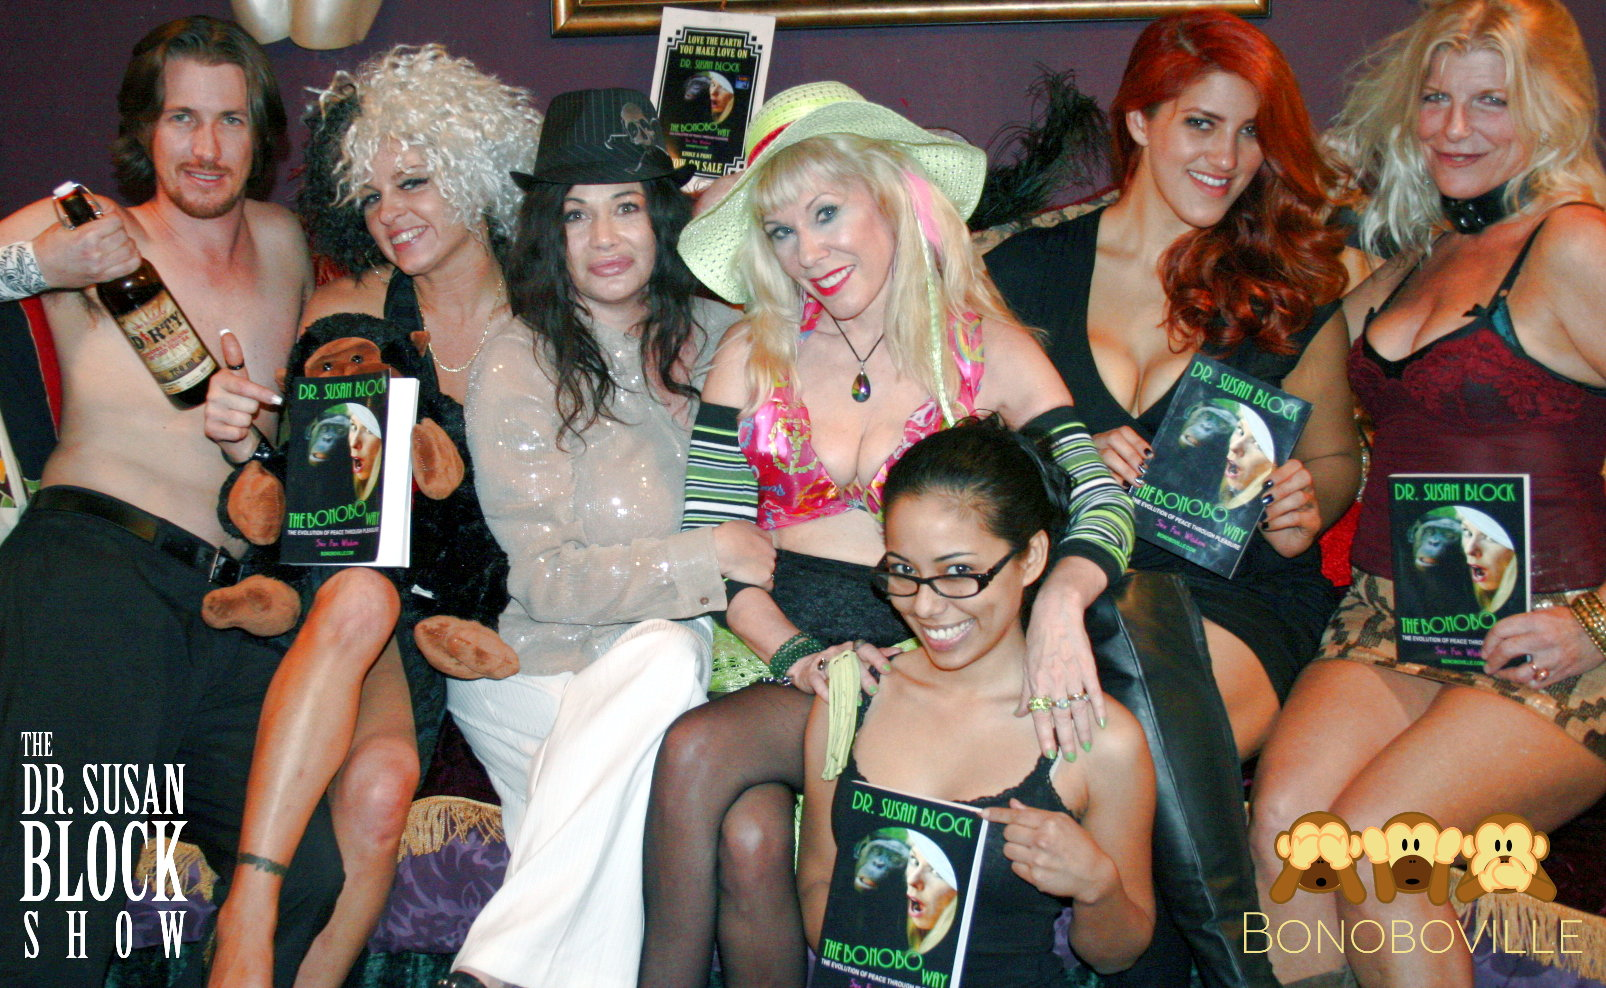 Dark Phoenix, Amanda Blow, Jenny Buss, Dr. Susan Block, Maya Goddess, Amber Golde, Chelsea Demoiselle. Photo: L'erotique